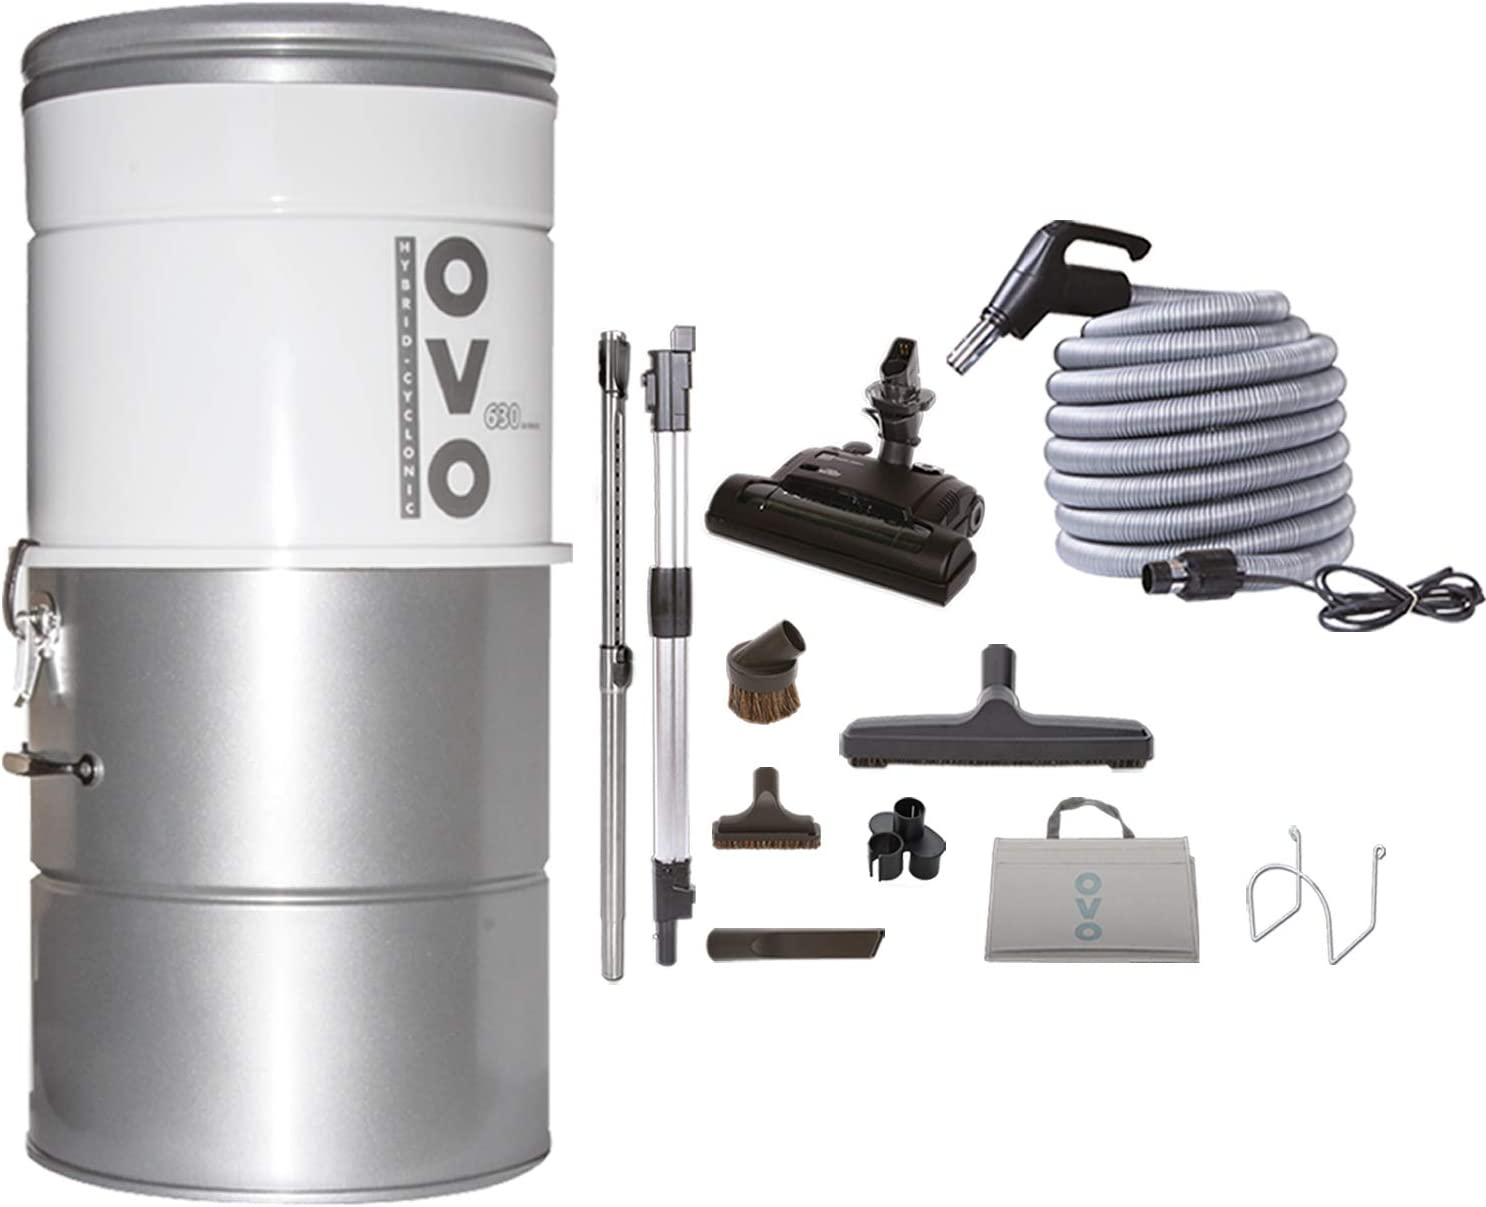 OVO Large and Powerful Central Vacuum System, Hybrid Filtration (With or Without disposable bags), 25L or 6.6 Gal, 630 Air wattsWith 40 ft Carpet Deluxe Accessory Kit included, Sliver (PAK63CD-40)